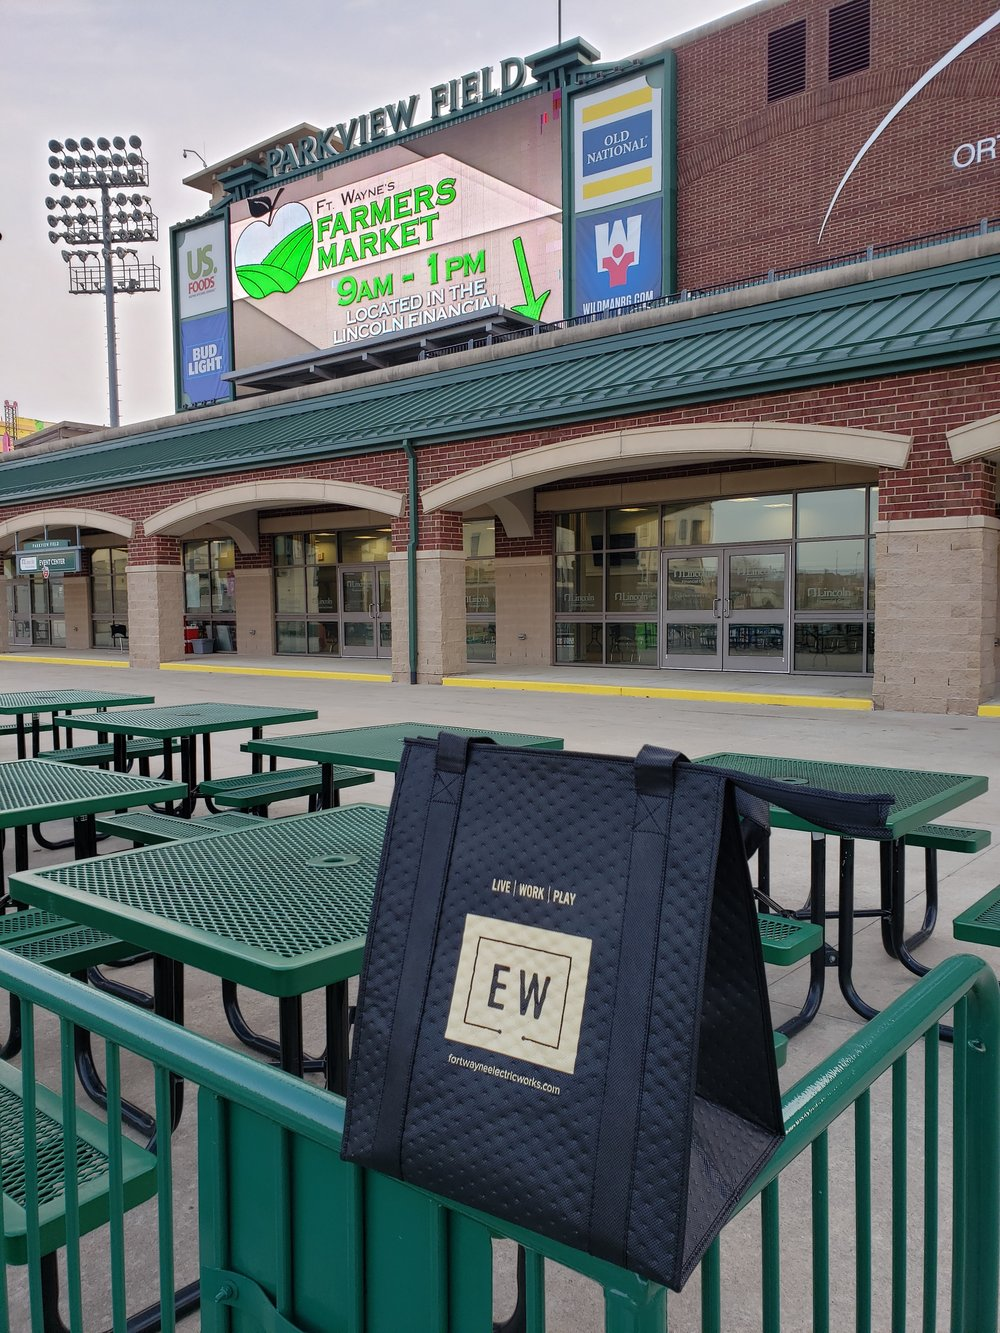 Stop by any of our Saturday Markets and get a new bag highlighting our ongoing partnership with Electric Works